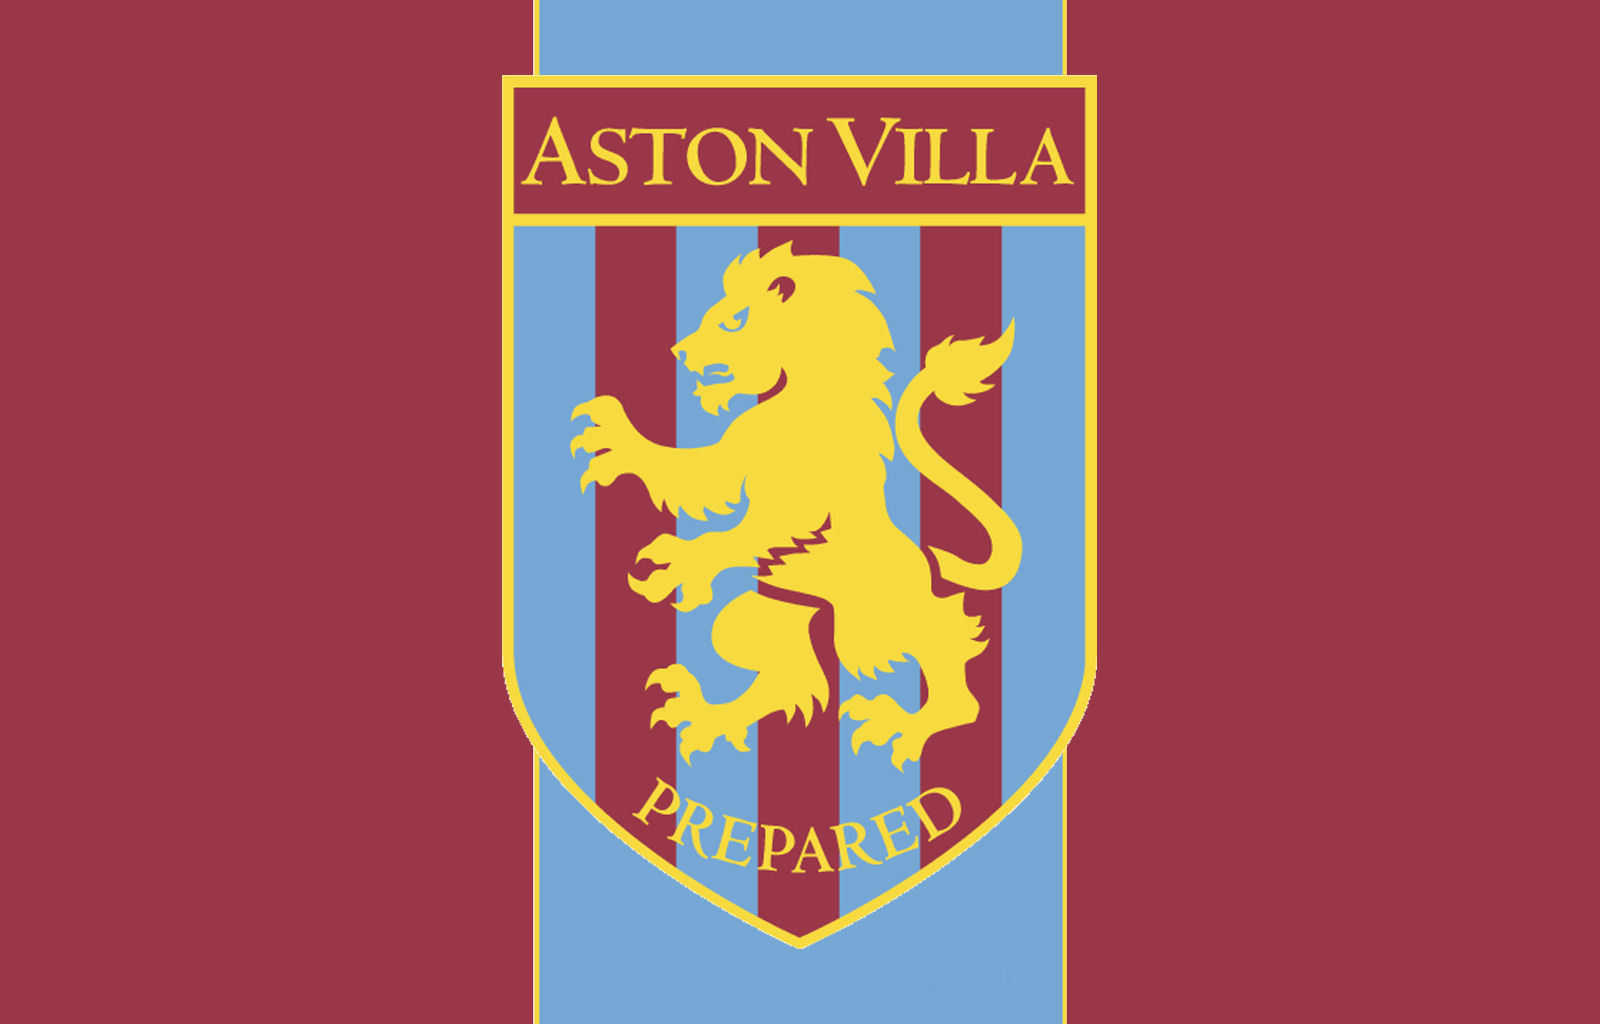 aston villa - photo #9